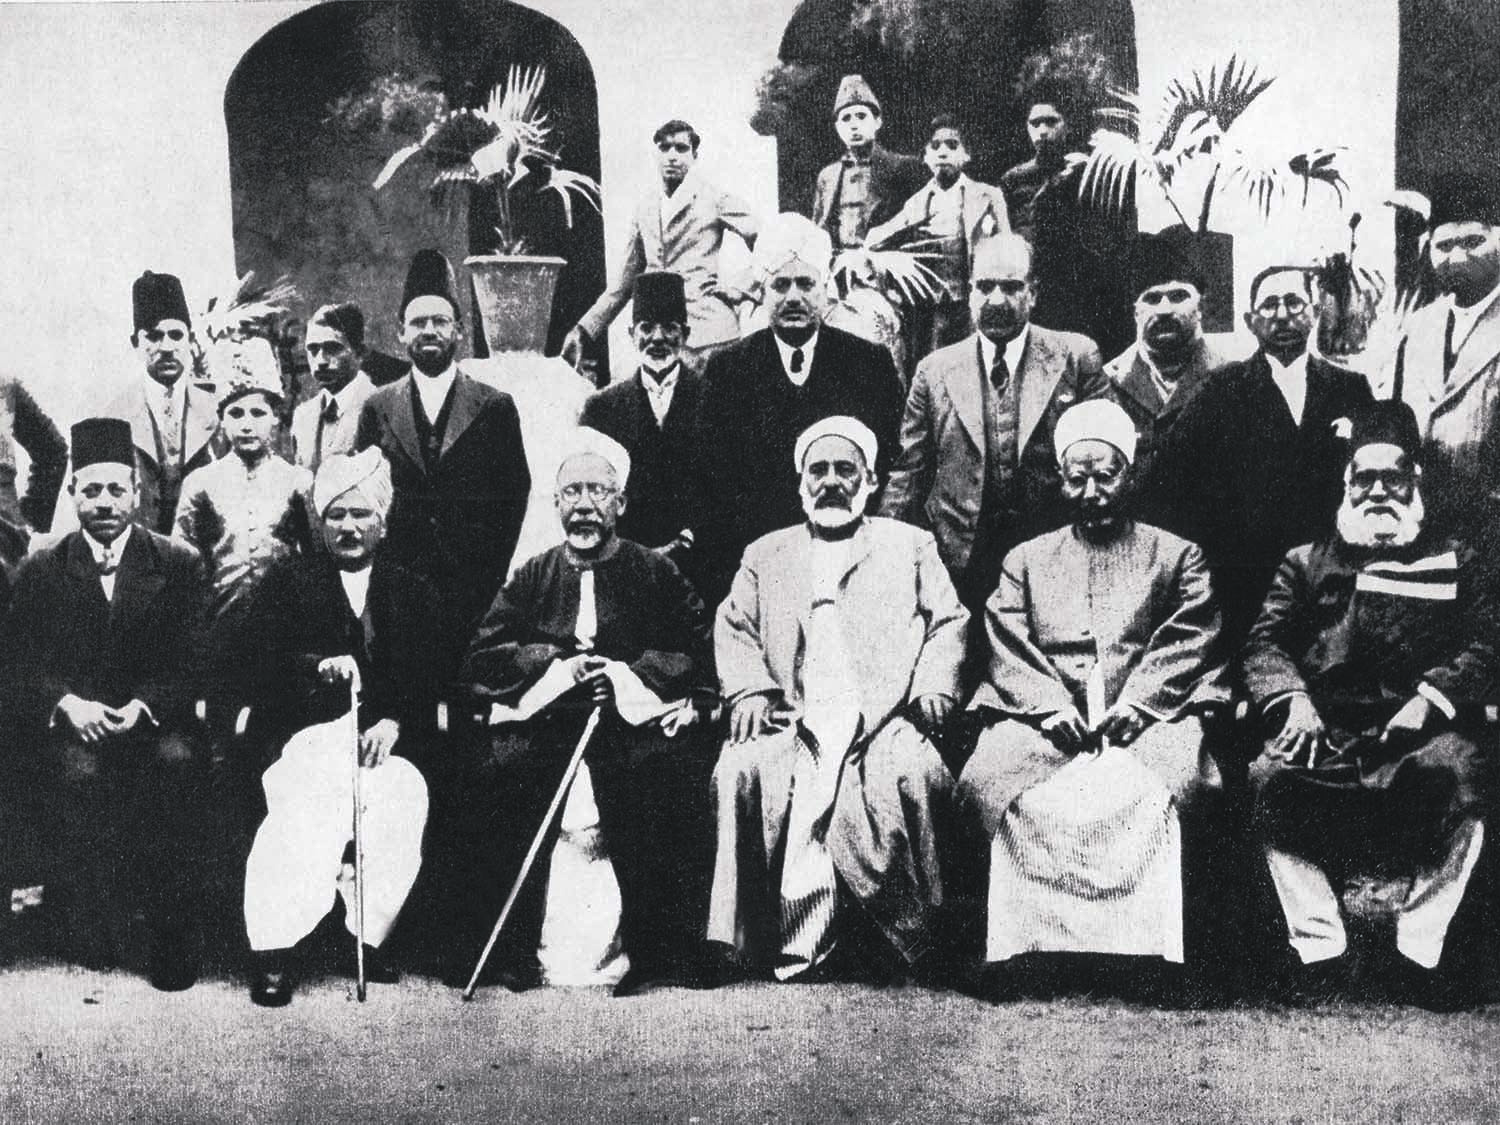 Allama Iqbal (back row; third from right) with scholars from the famous Al-Azhar University, Cairo, who visited Lahore in 1937. Photo: The Allama Iqbal Collection.